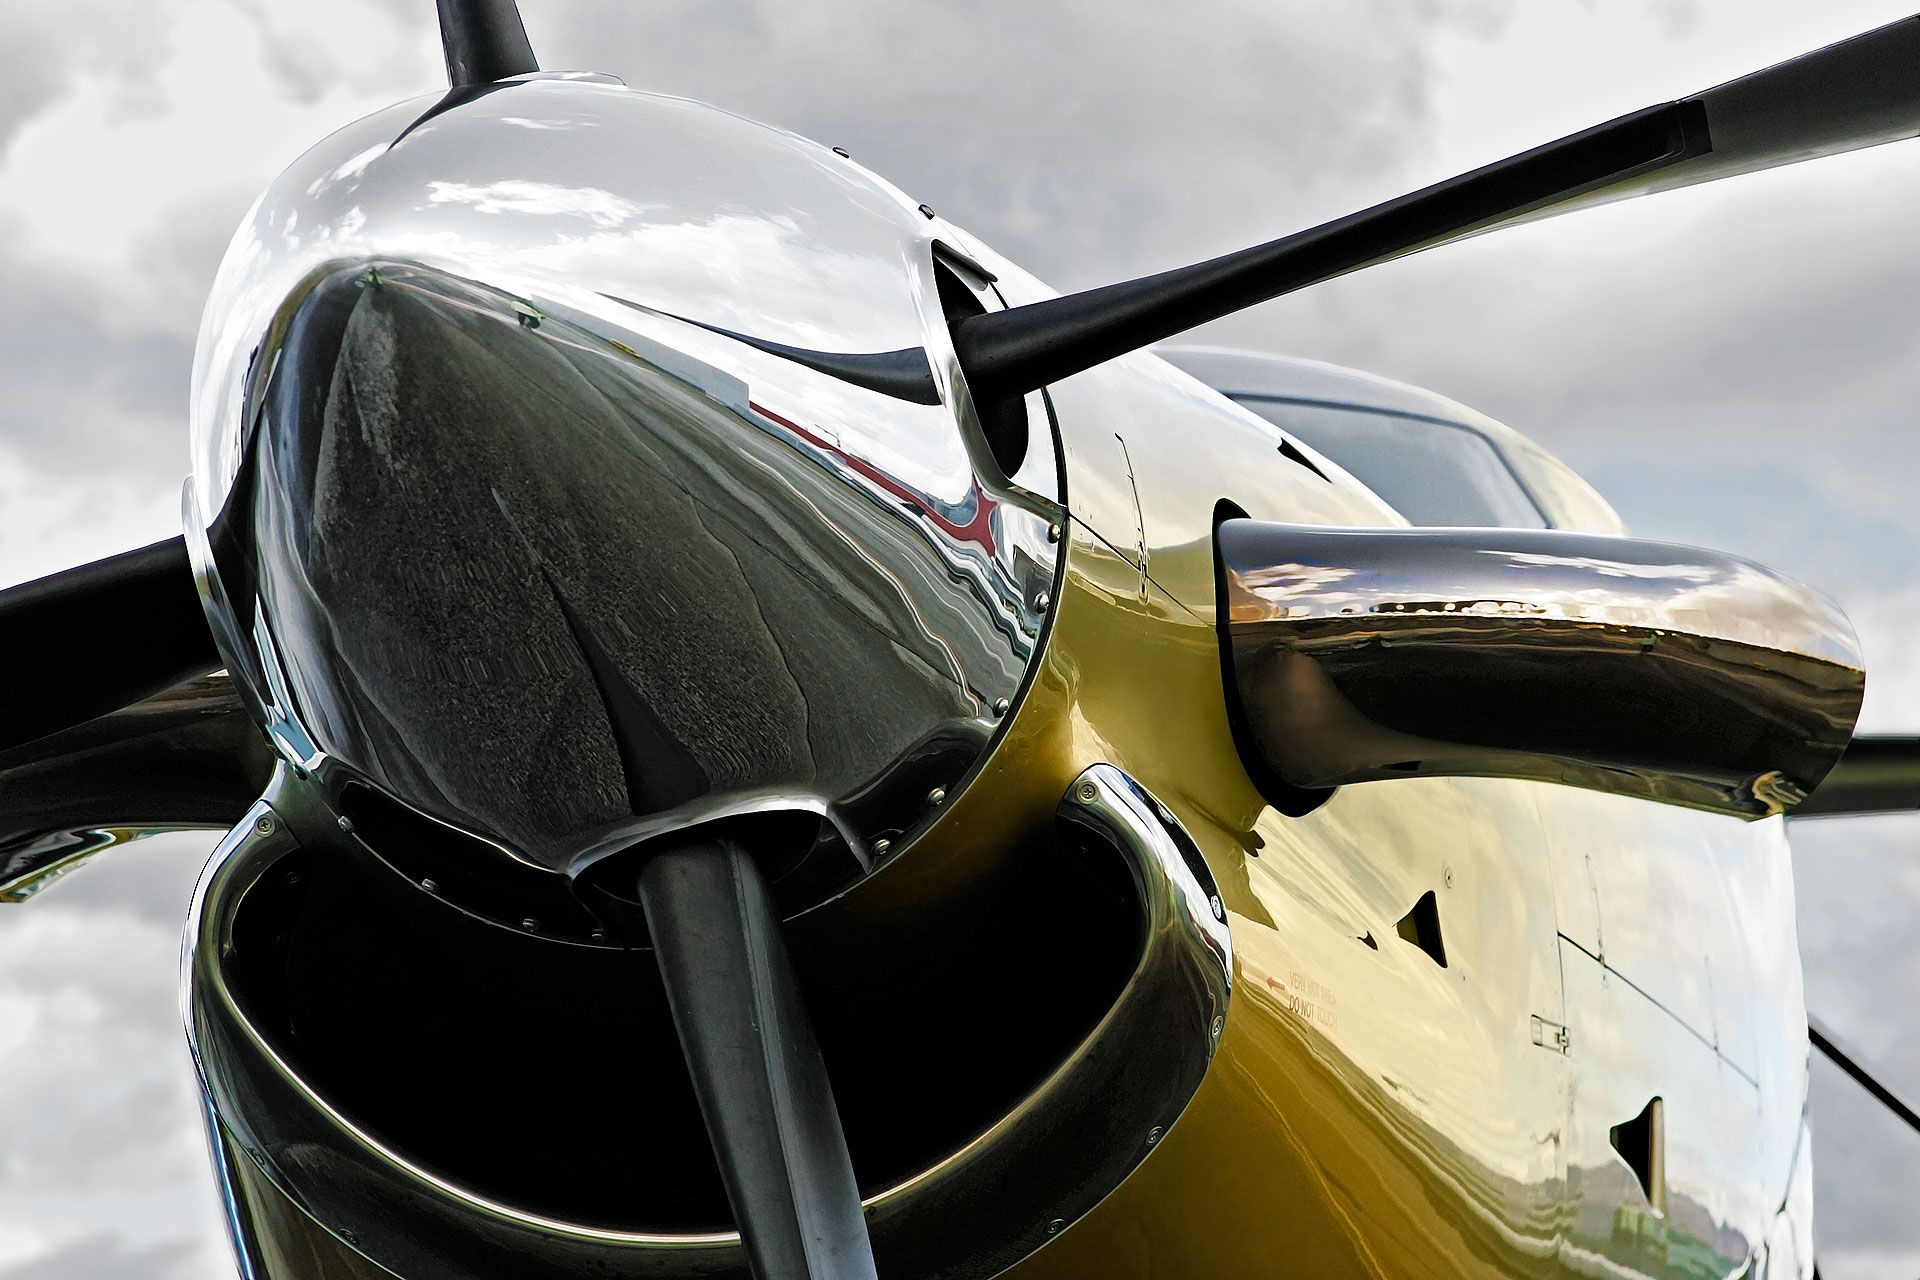 Wings & Bridges Pilatus PC-12 Nose